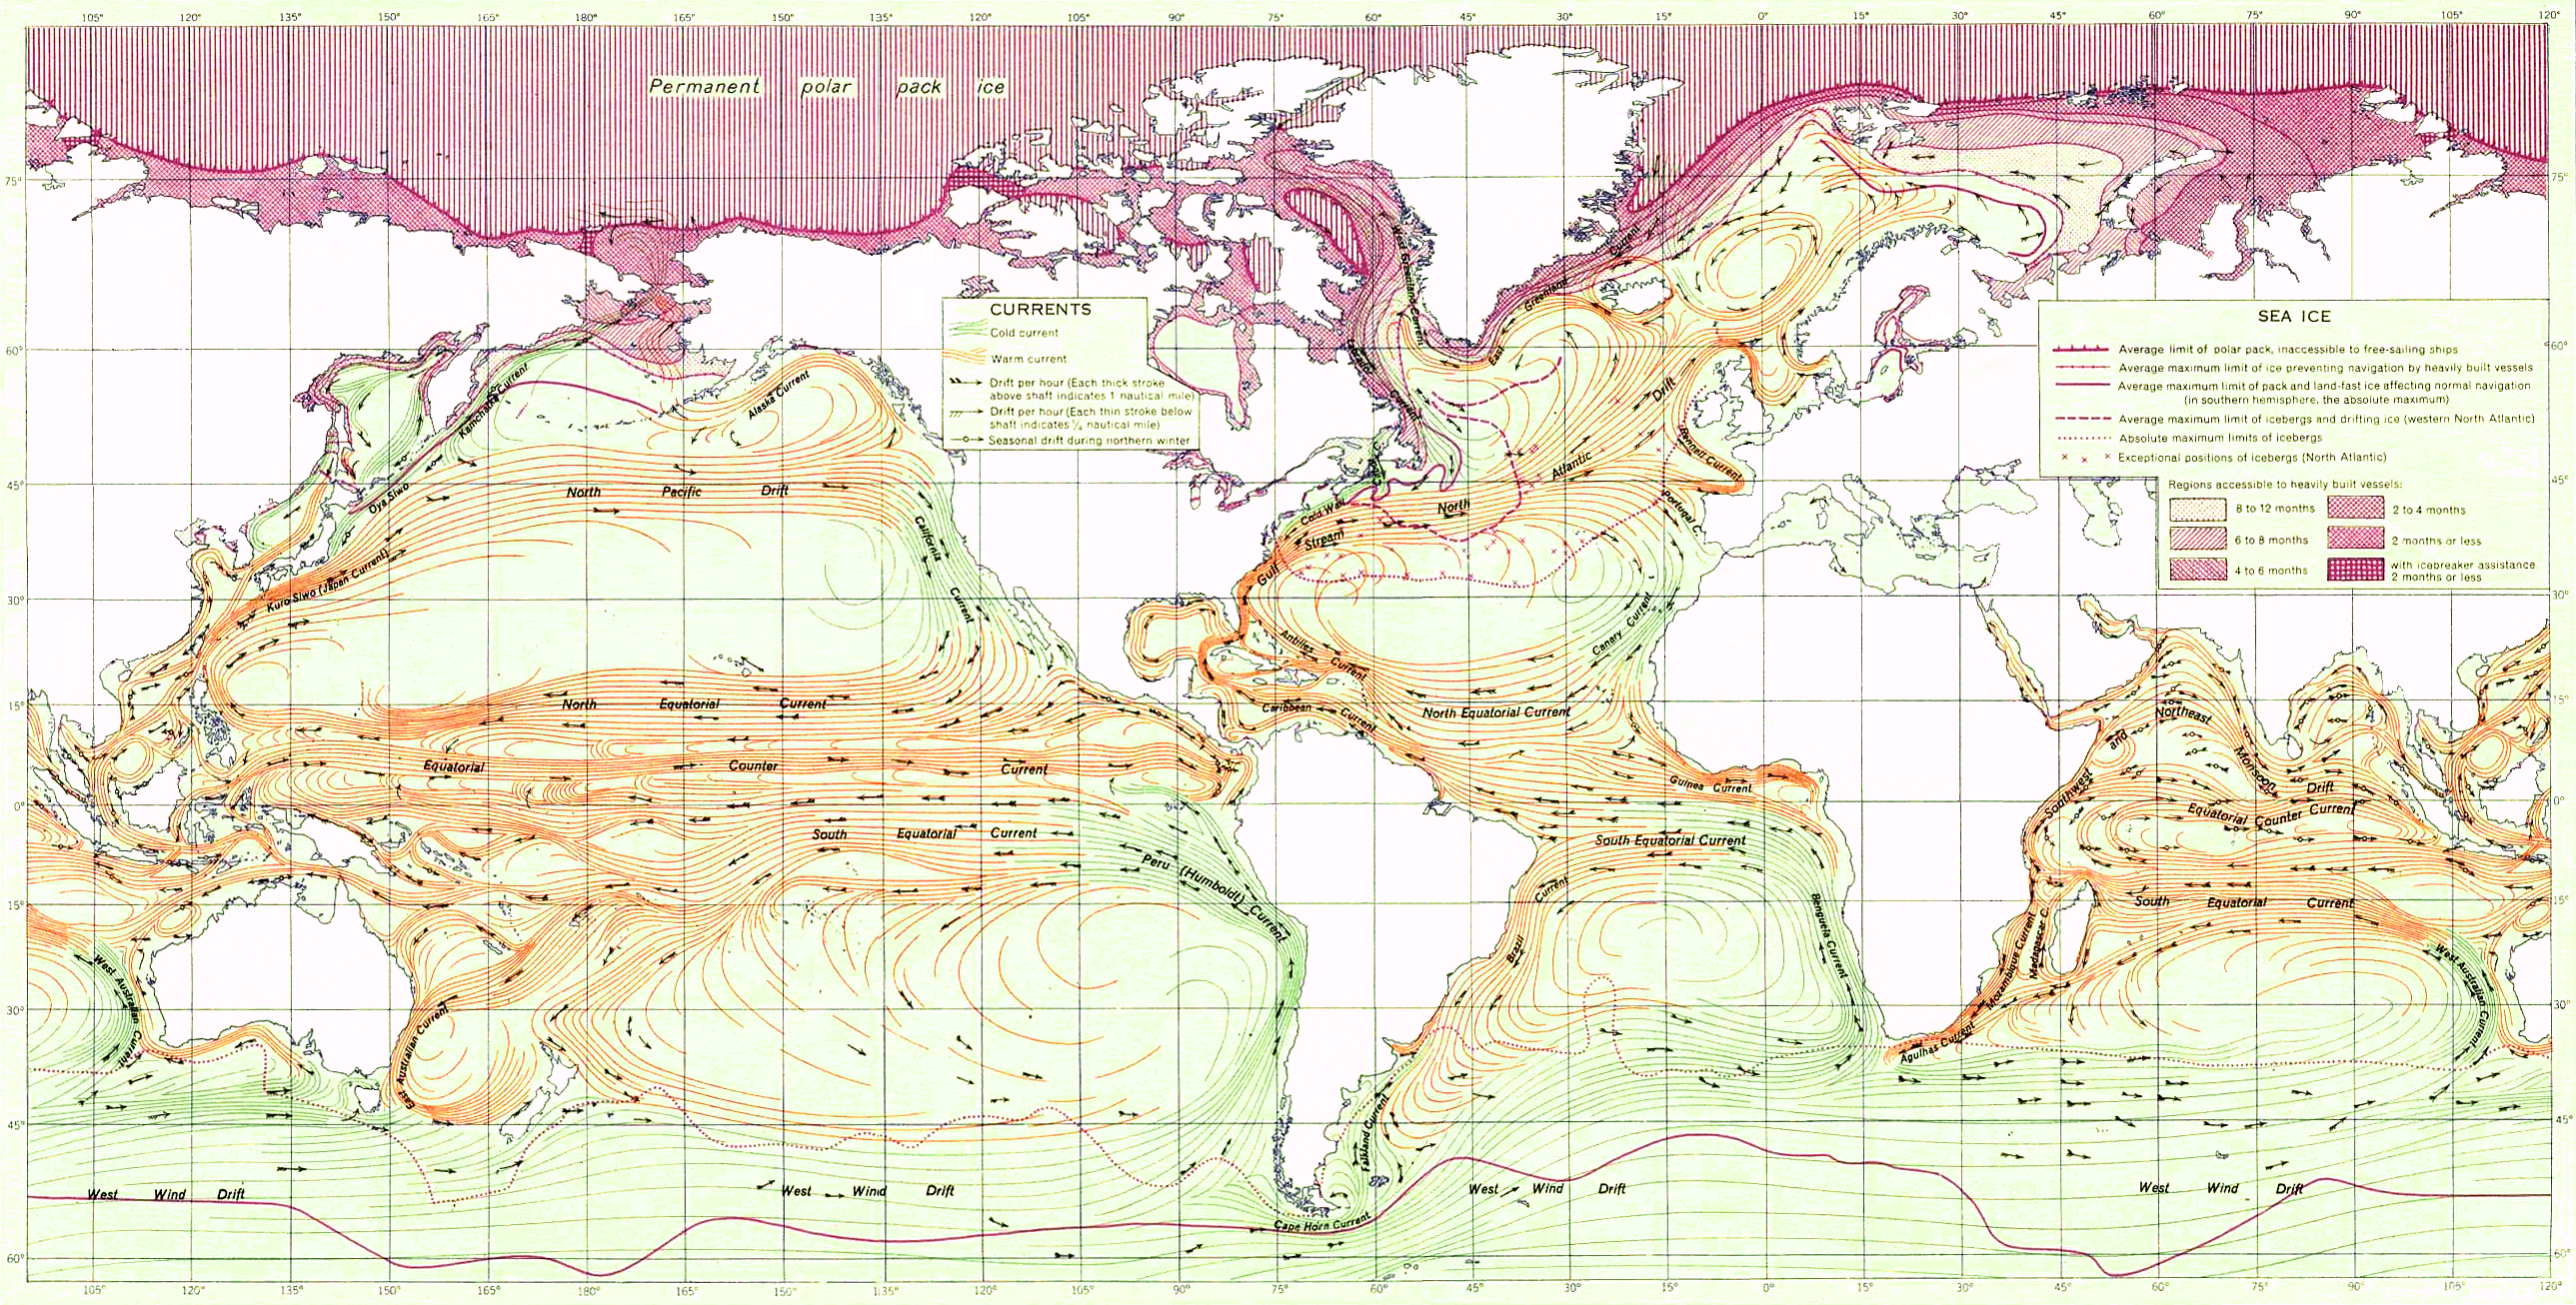 https://i2.wp.com/upload.wikimedia.org/wikipedia/commons/6/67/Ocean_currents_1943_%28borderless%293.png